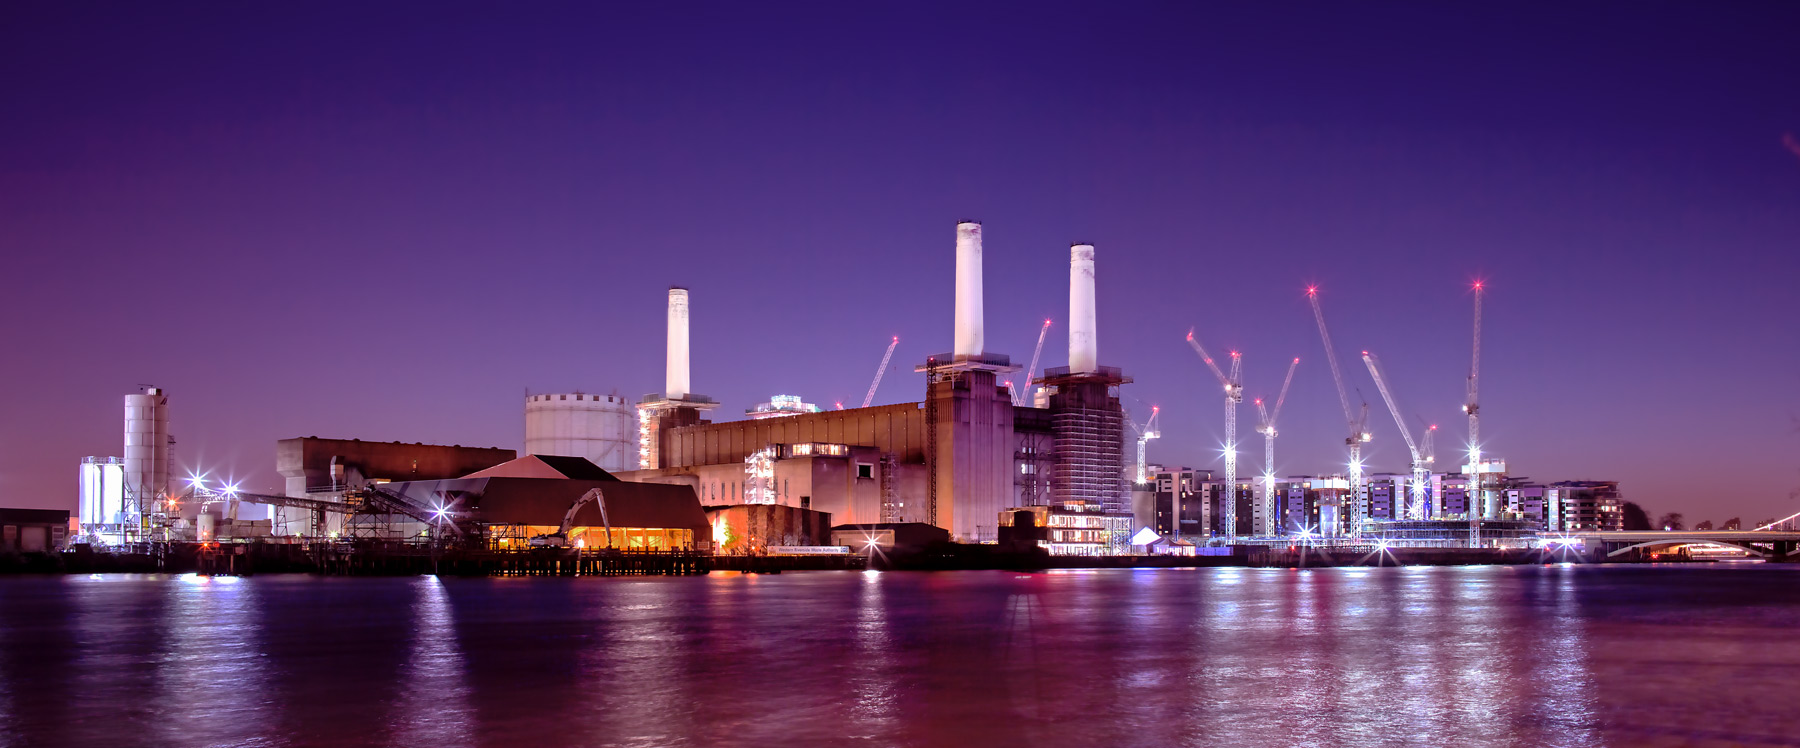 Battersea Power Station, architectural photography.